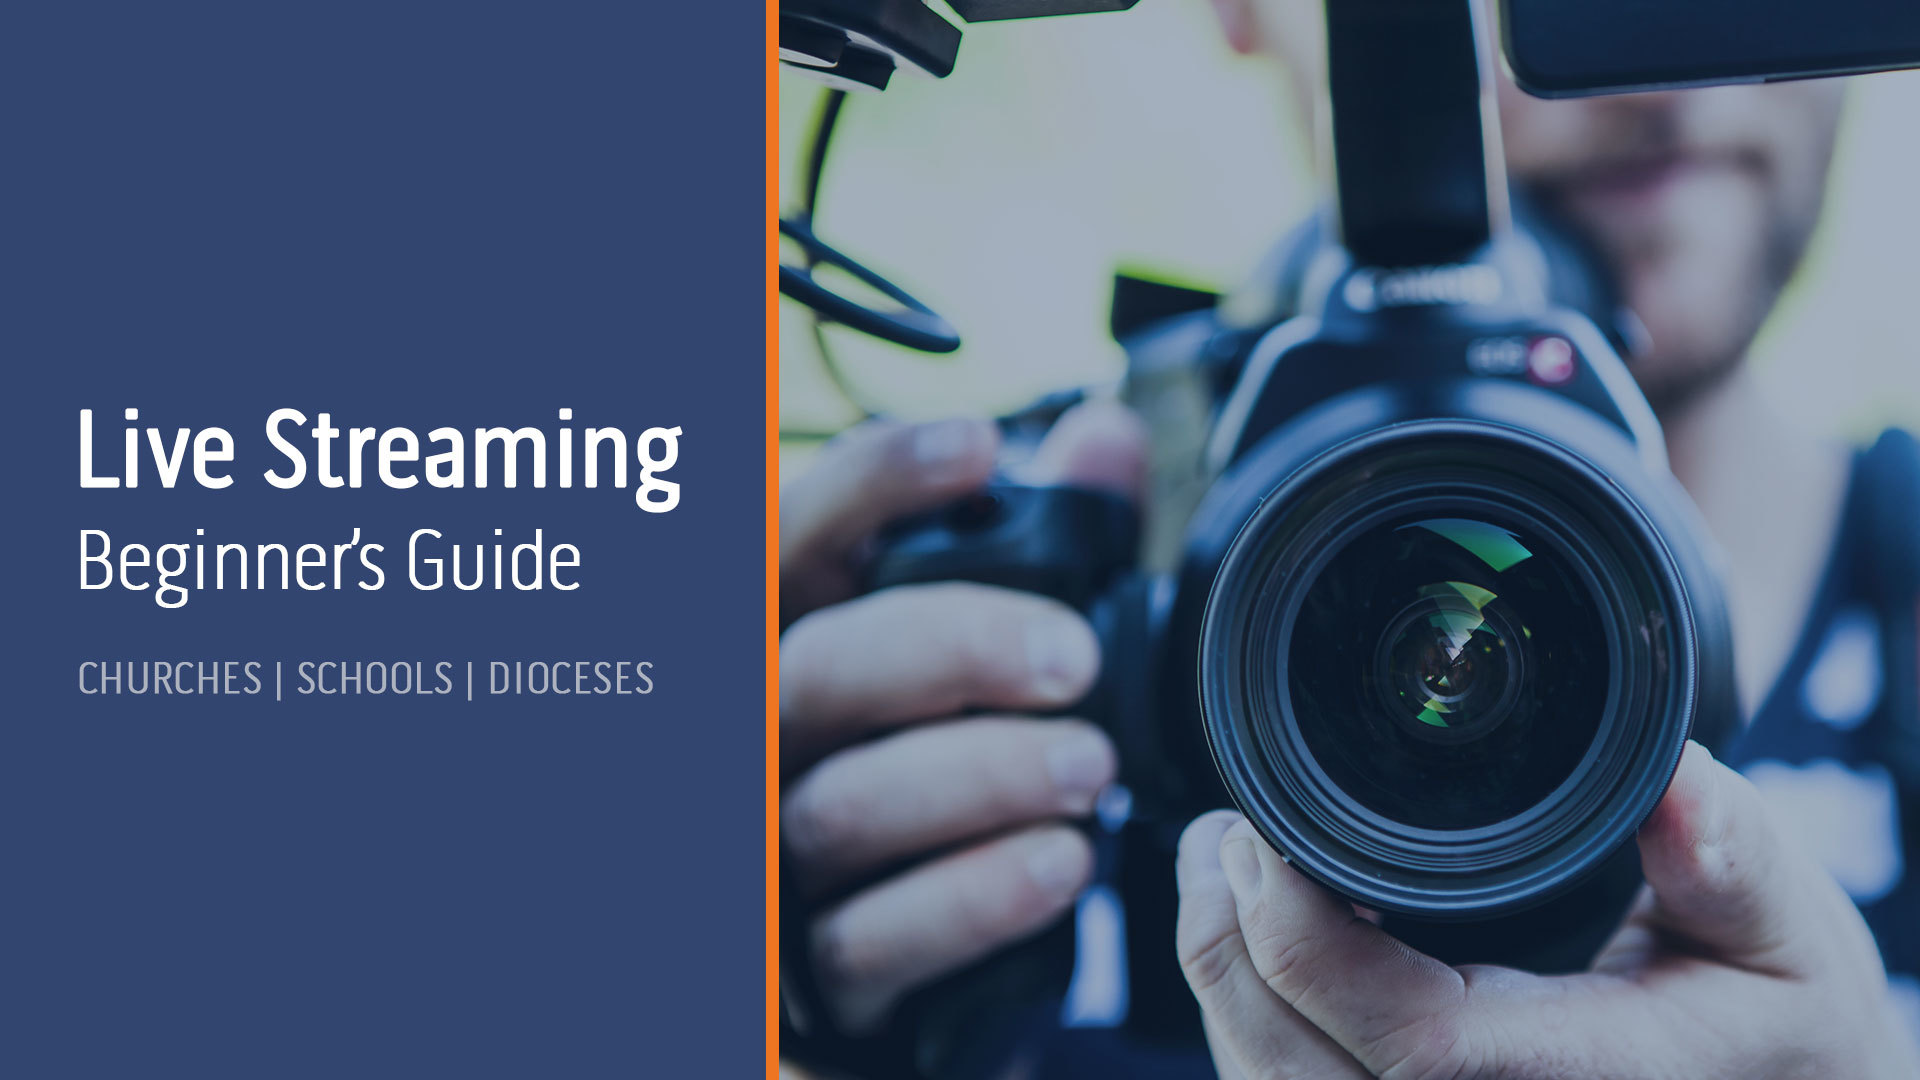 Live Streaming Beginner's Guide